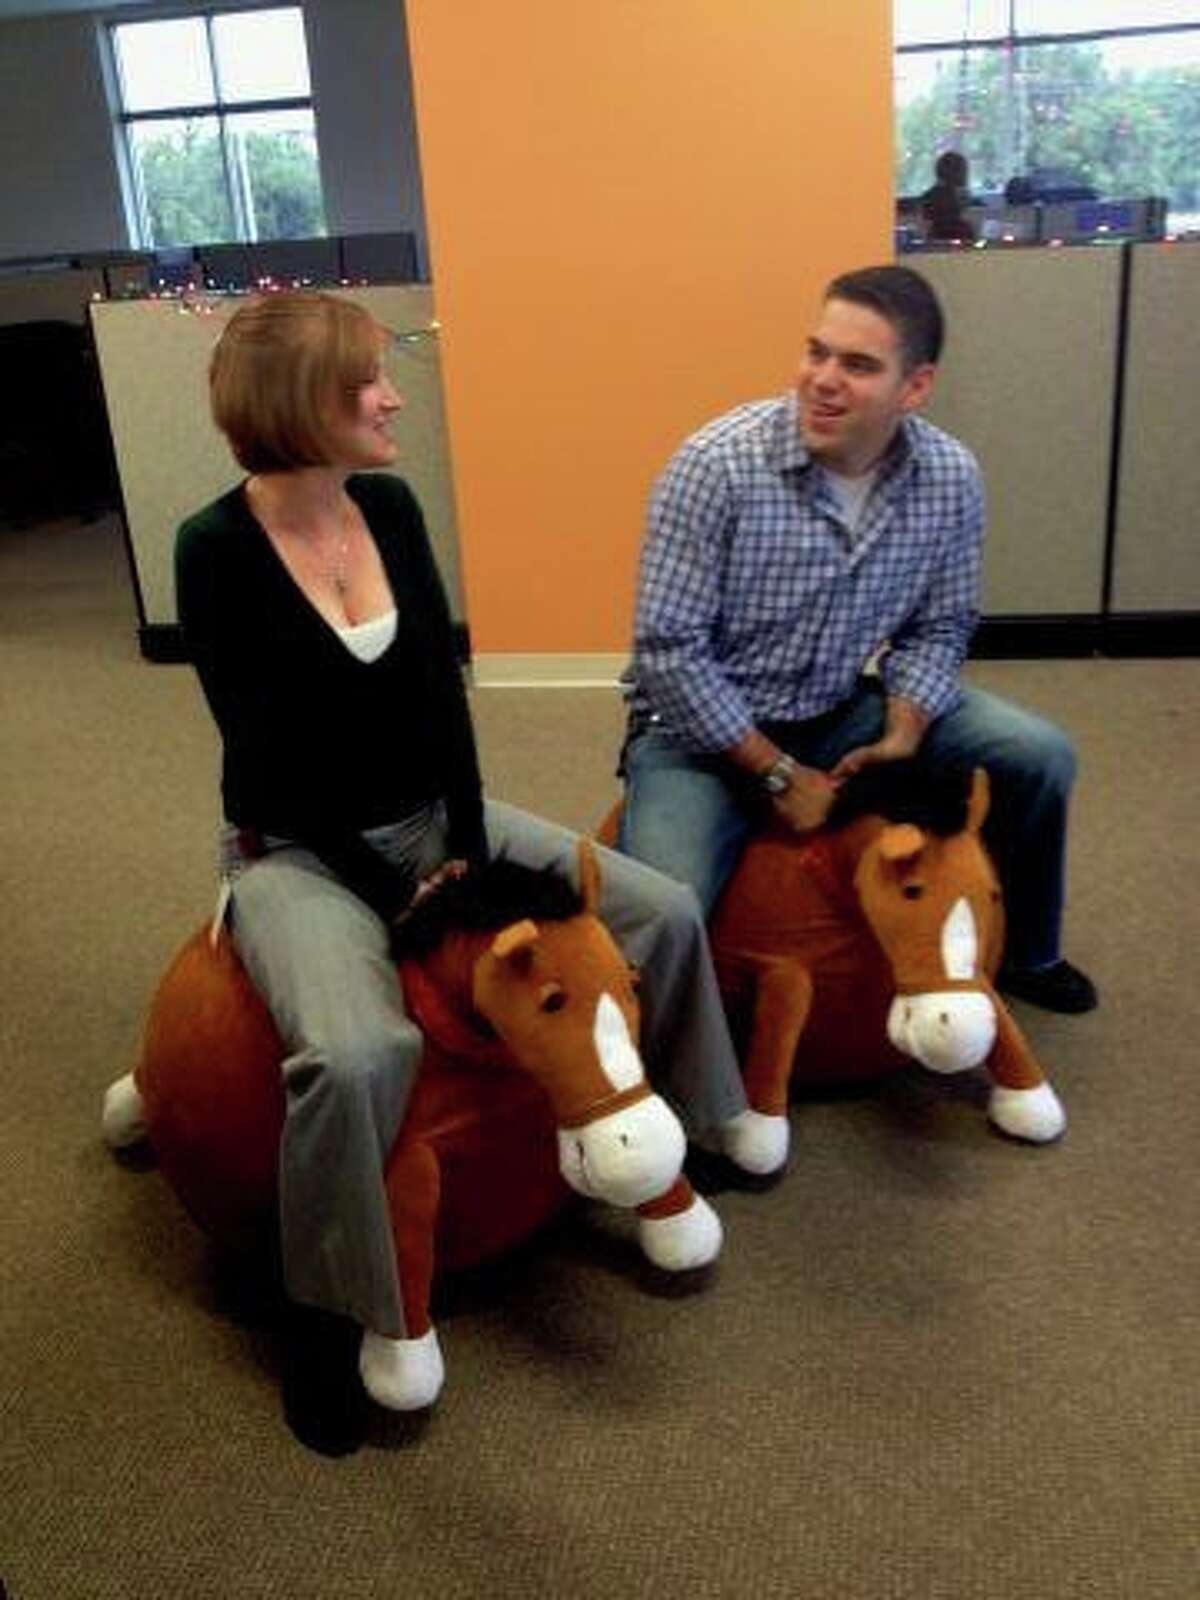 Amanda Bayane, left, and Javier Cano use the bouncing horses to get around the halls at Hostway.